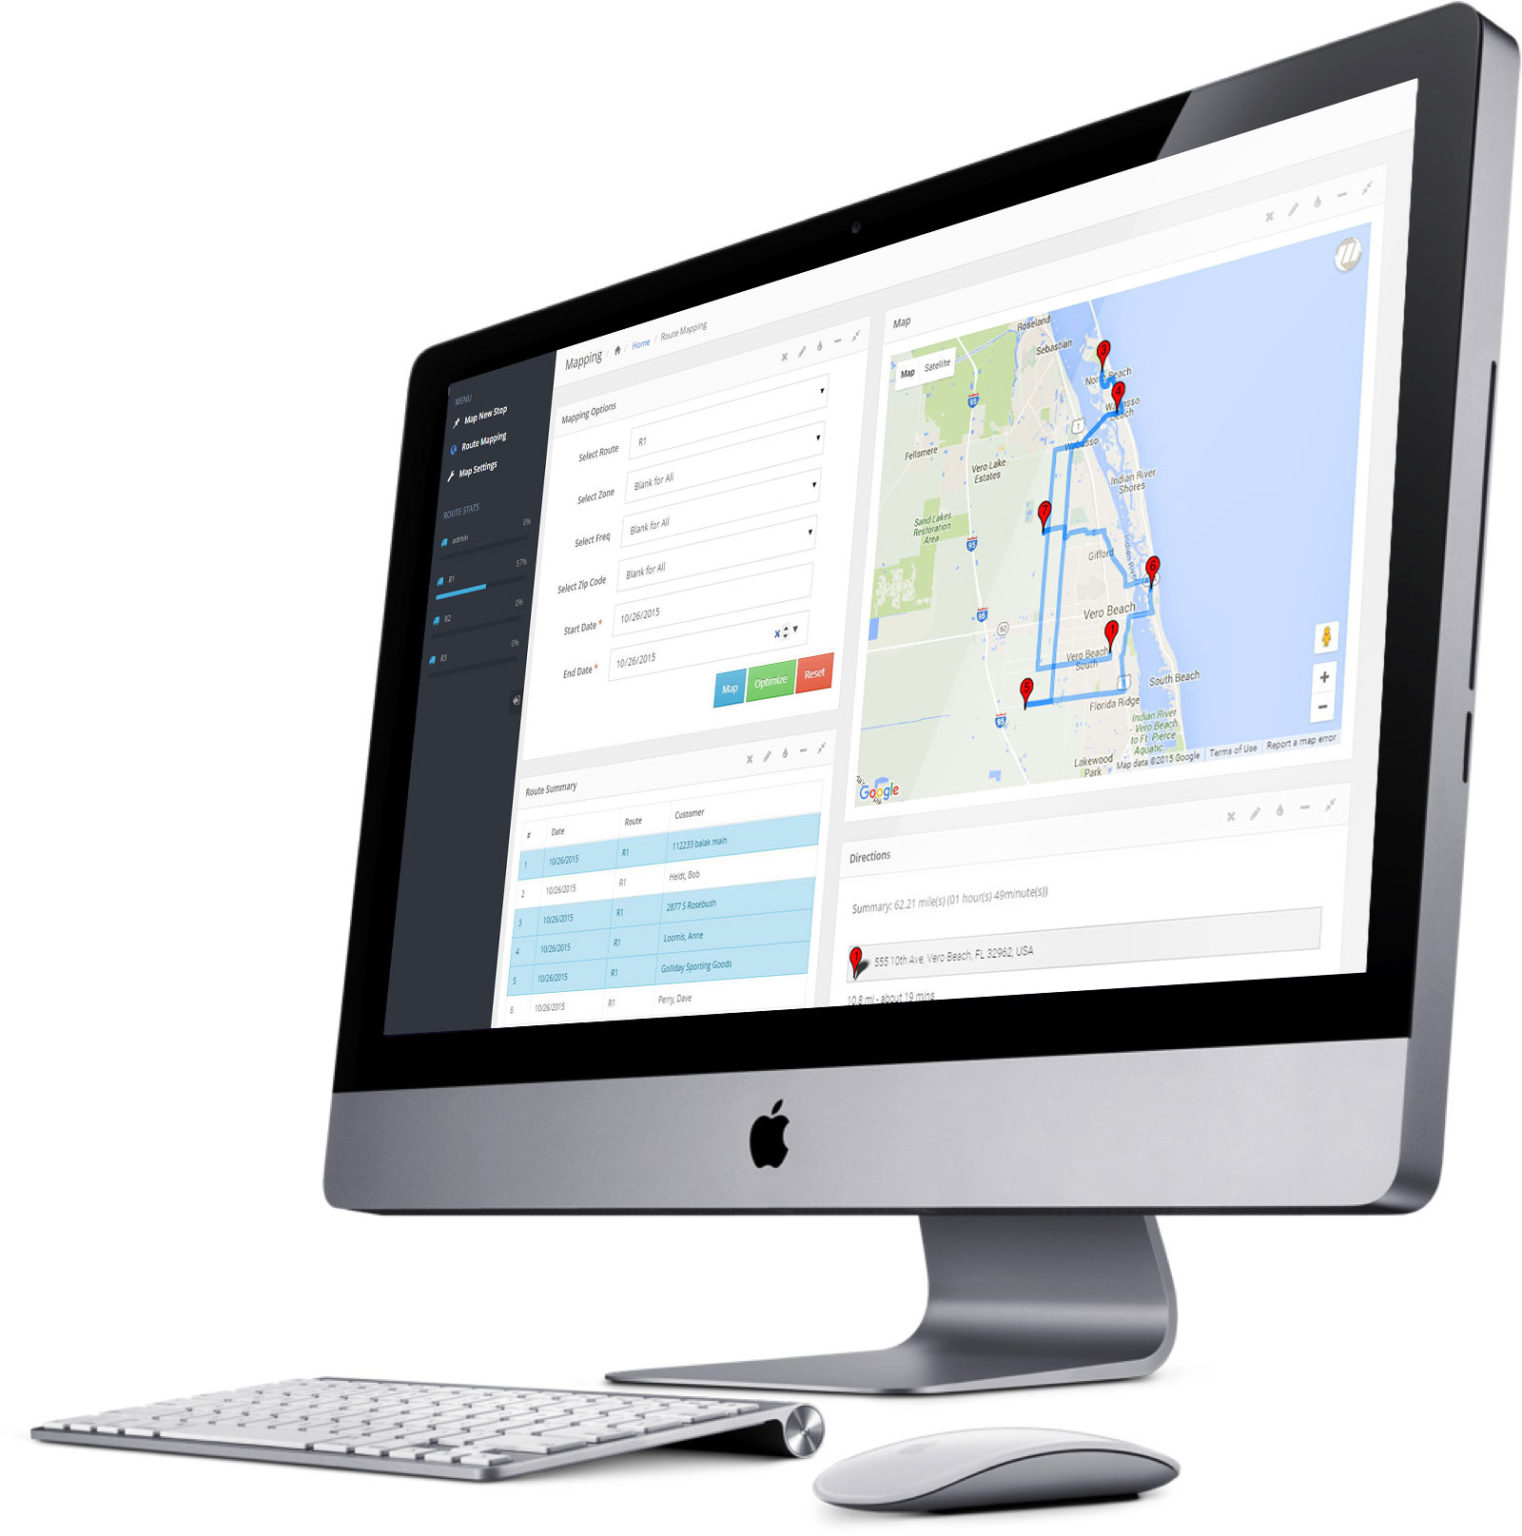 Mapping Software shown on the desktop